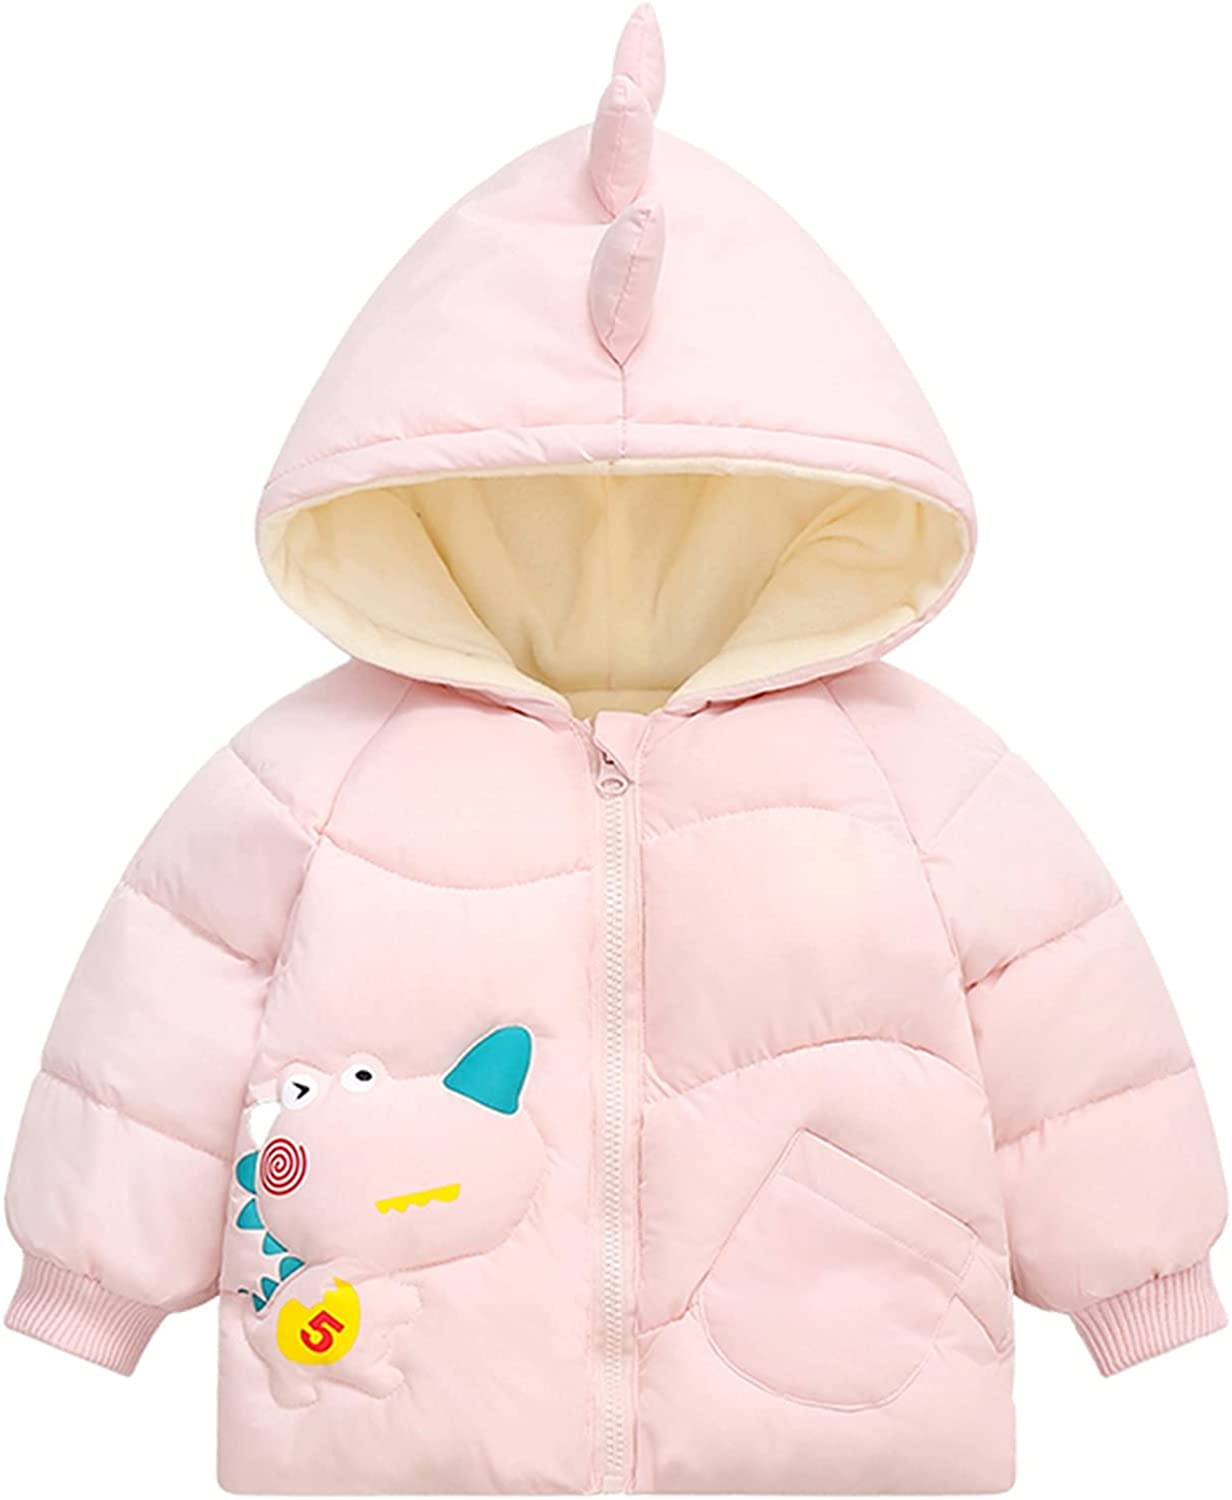 Houston Mall Hoodie Zipper Tampa Mall Coat Outfit Thick Toddler Baby Boys Clothes Kids G